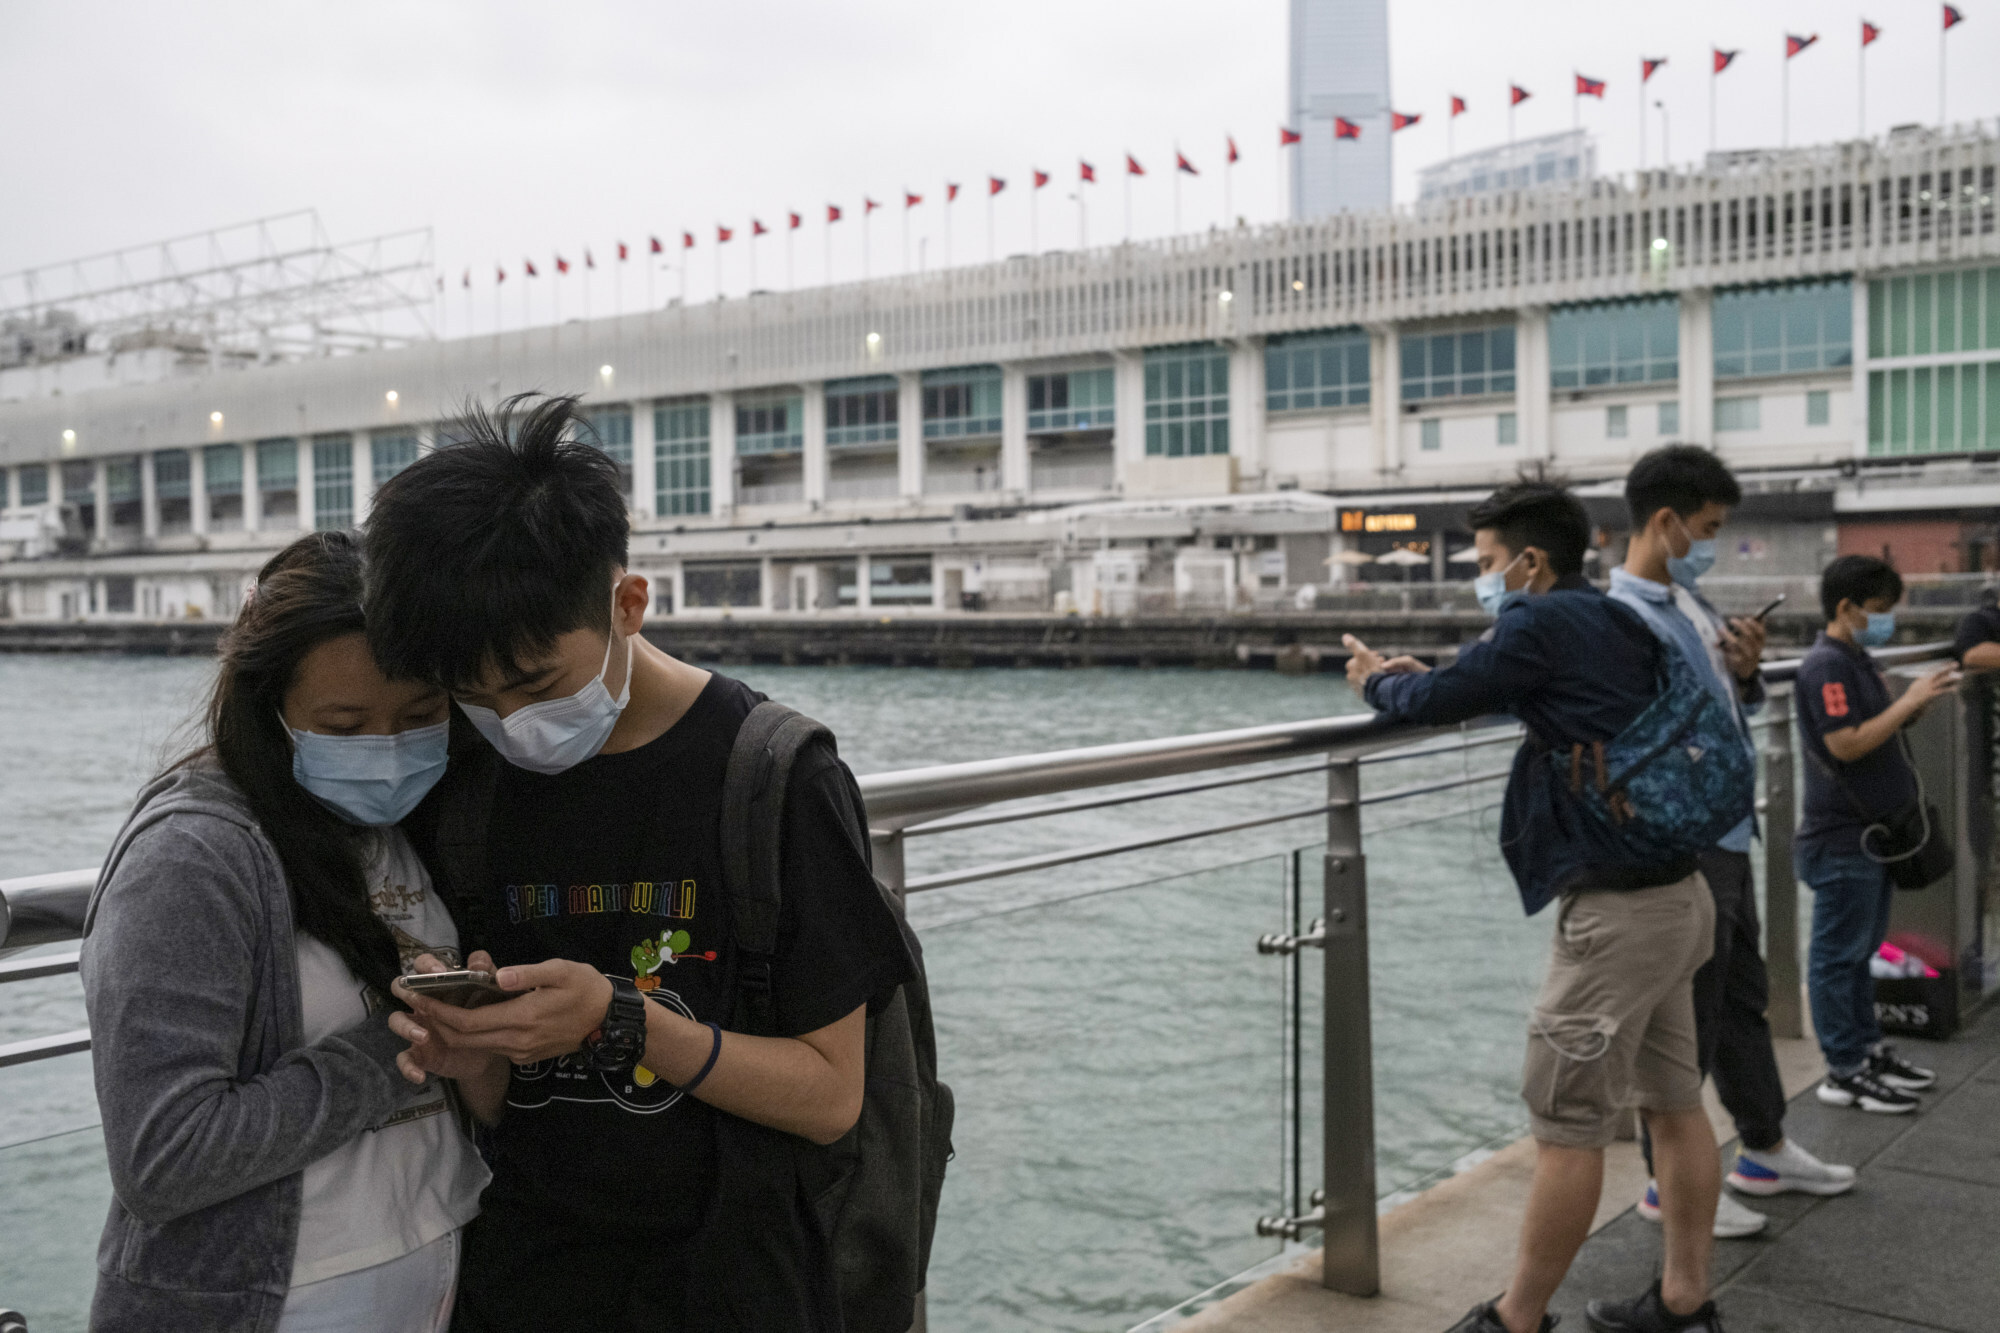 Hong Kong's privacy commissioner has now twice requested that Facebook notify Hong Kong users directly about the recent leak of their personal information. Photo: Sun Yeung